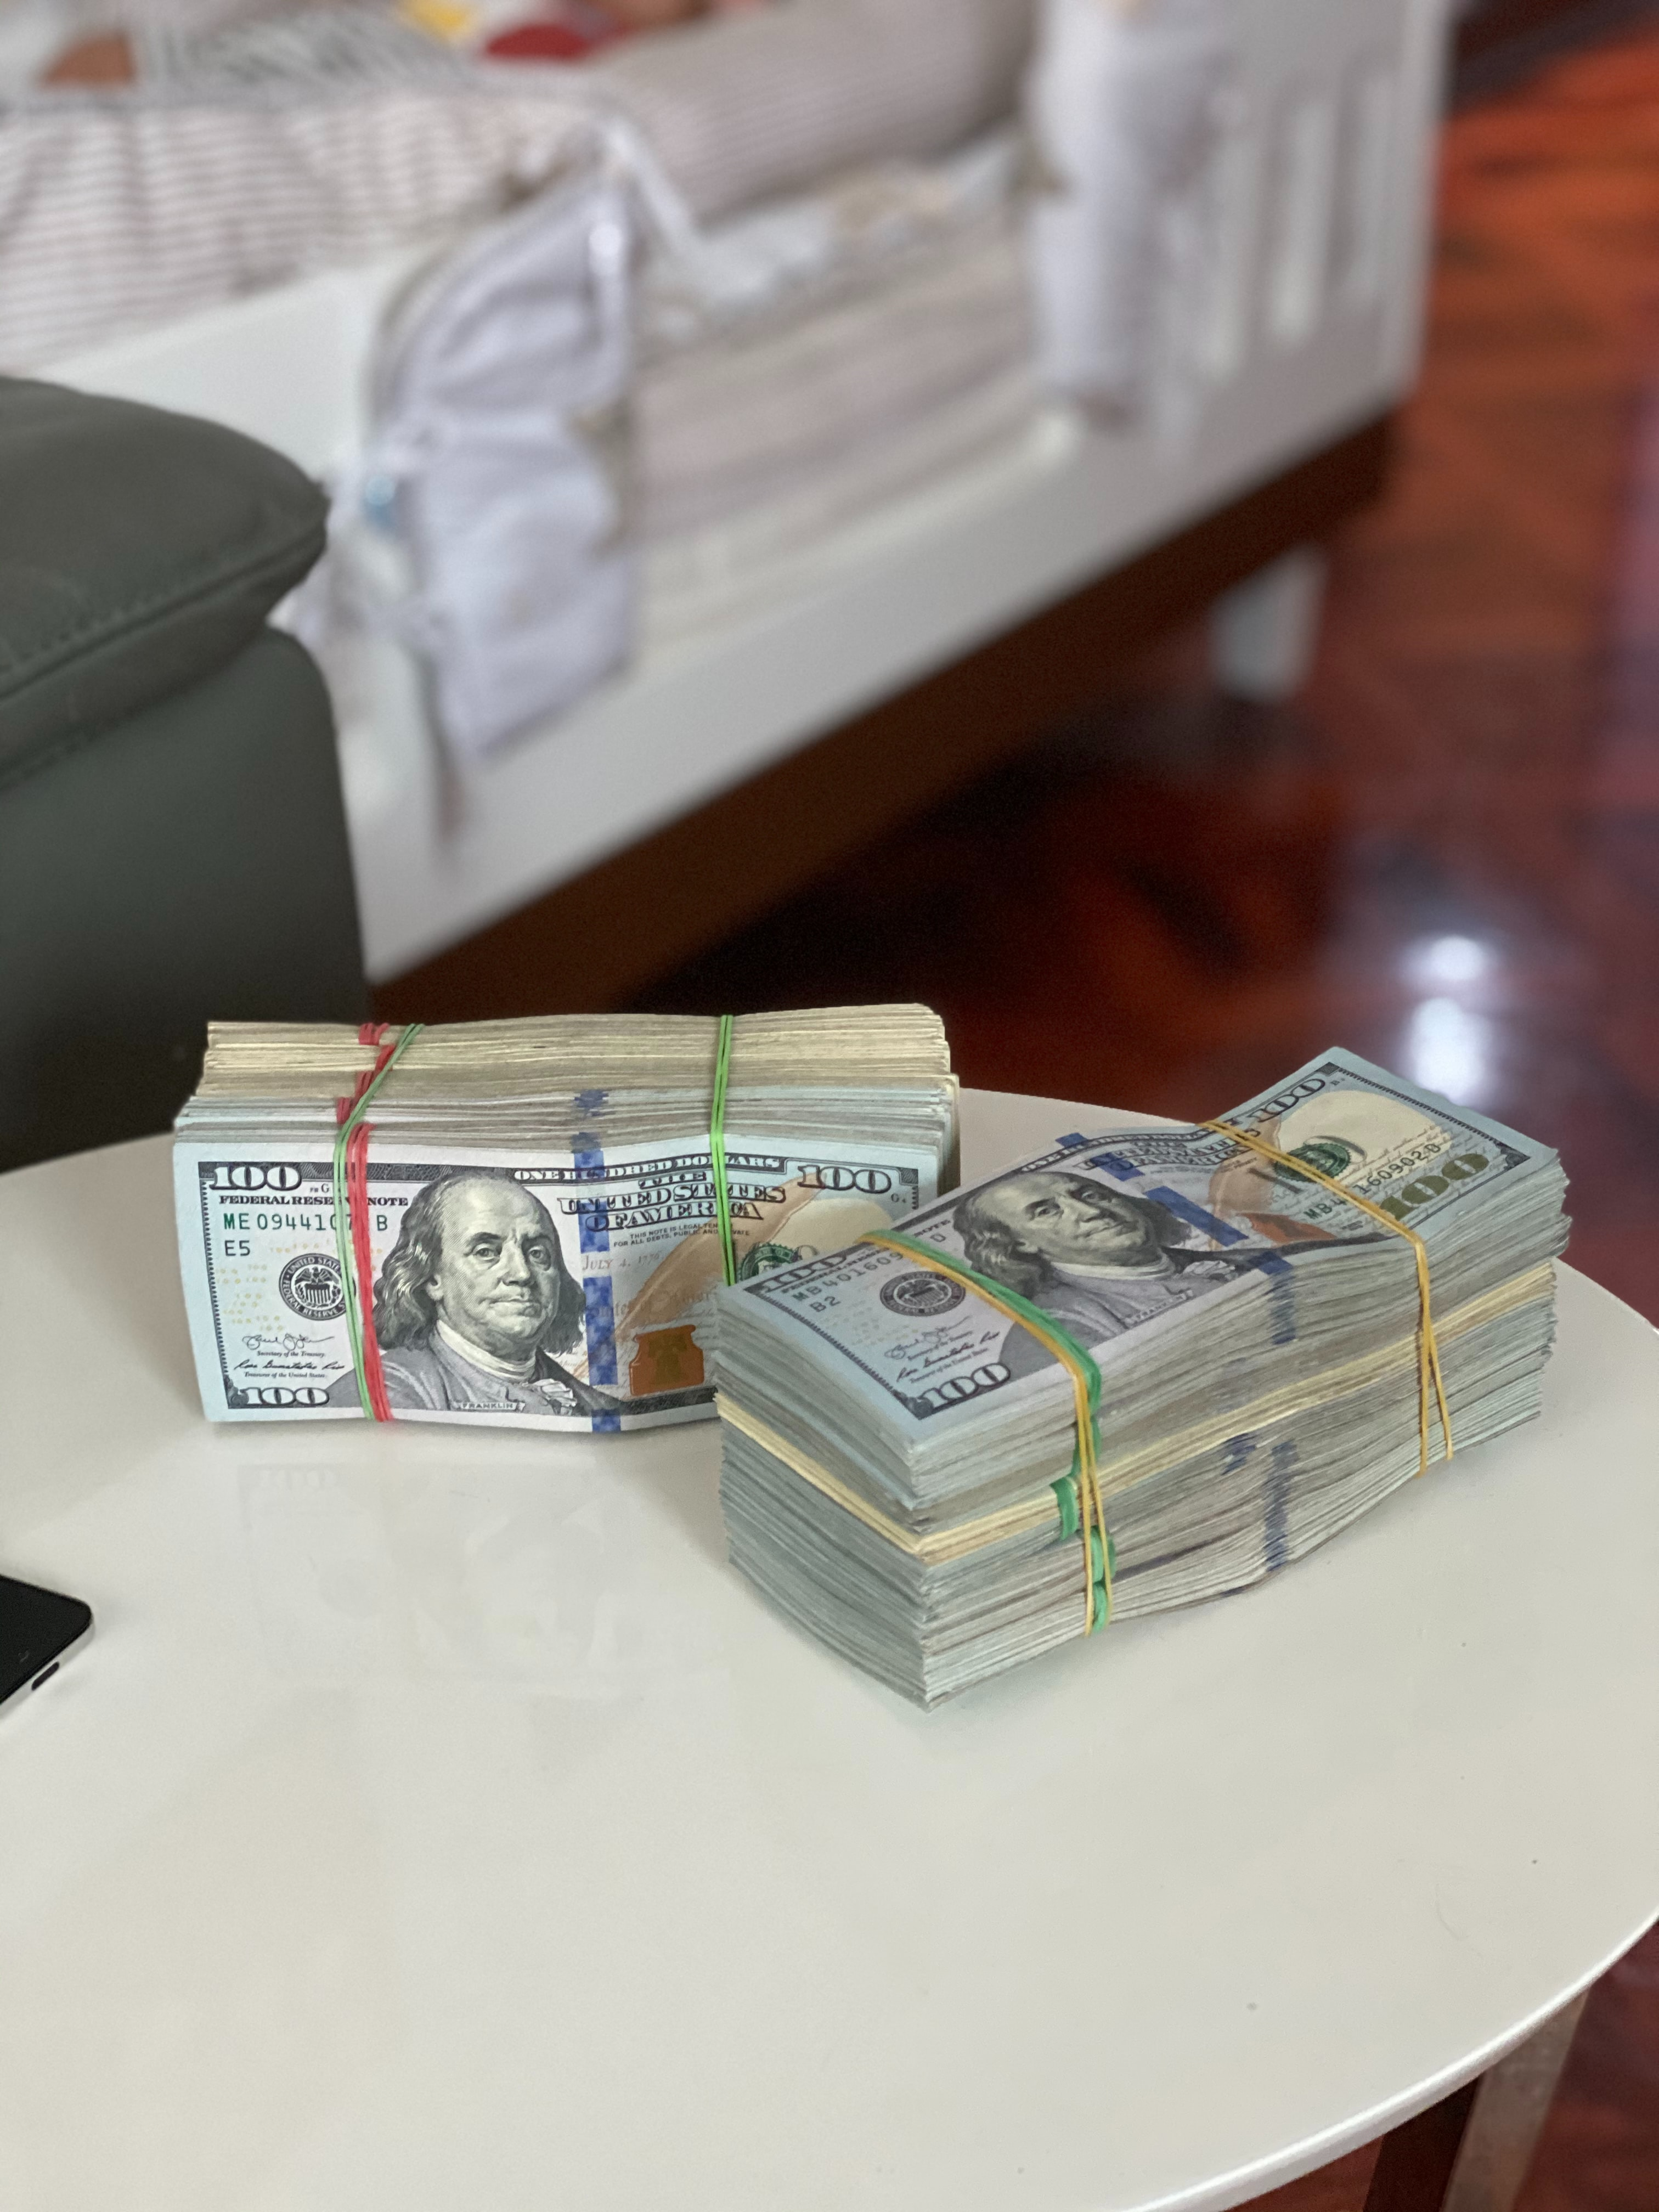 Six Charged in $12M Student Loan Scheme